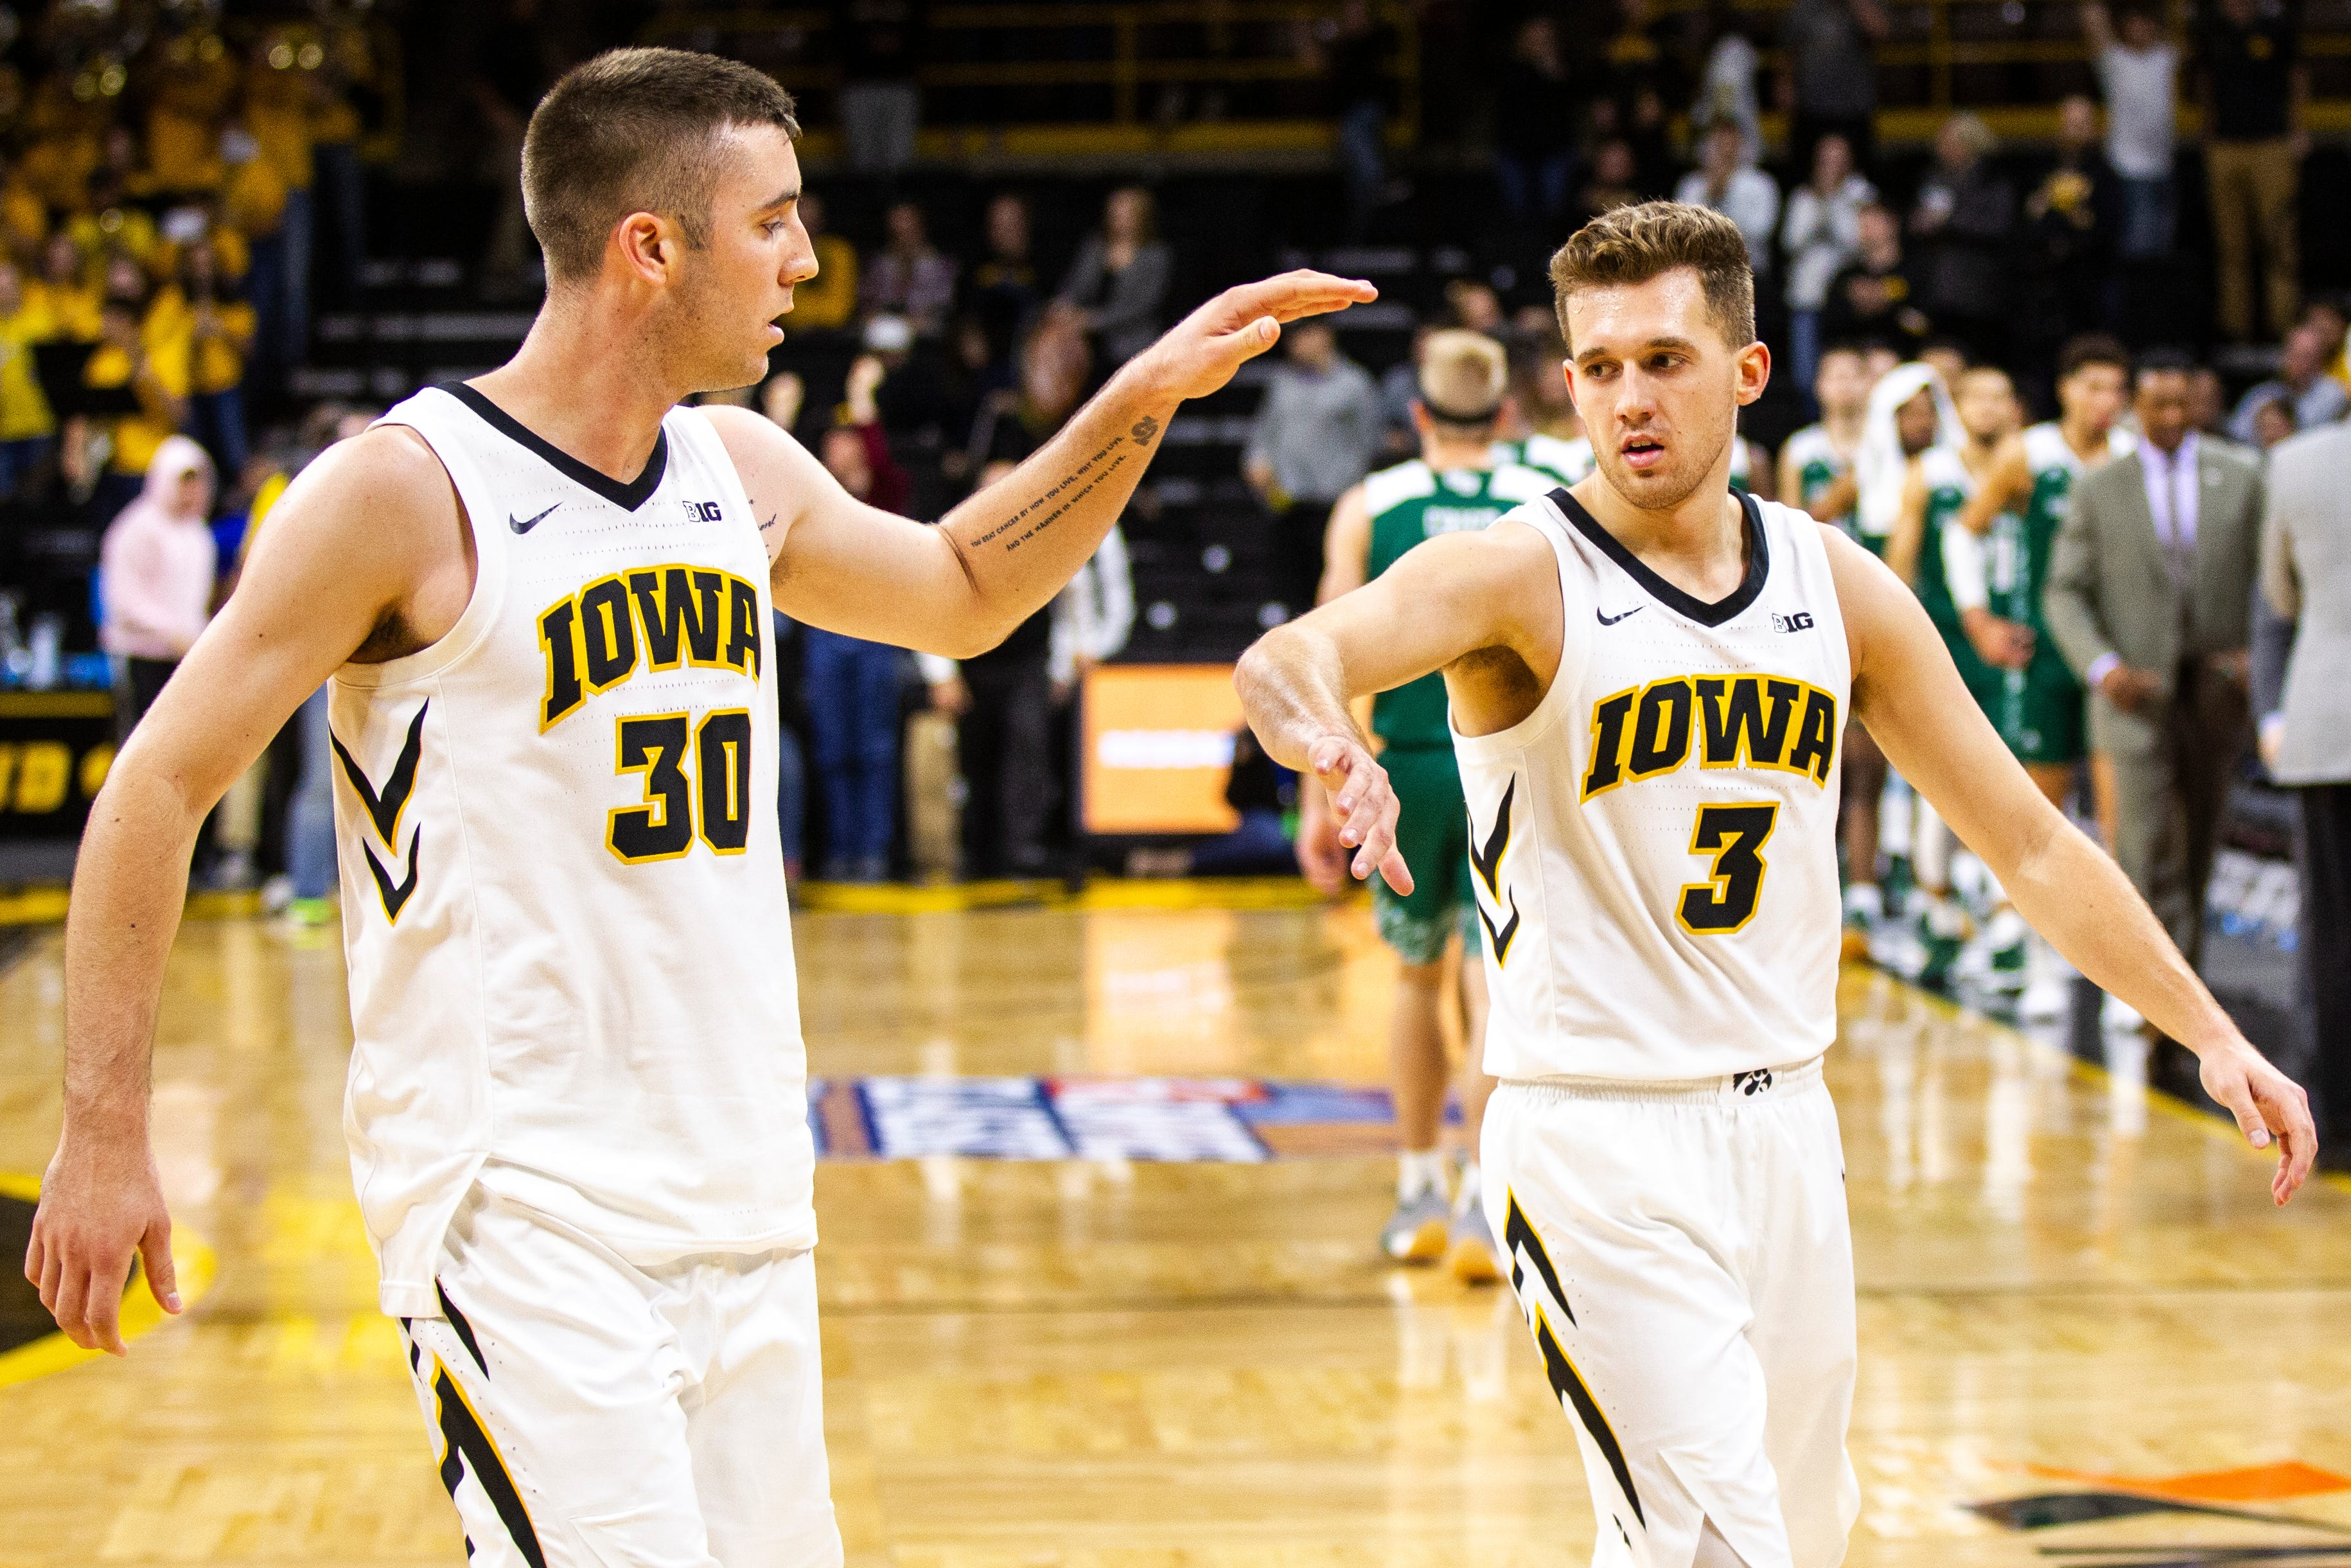 iowa basketball: hawkeyes face oregon as they open defining stretch